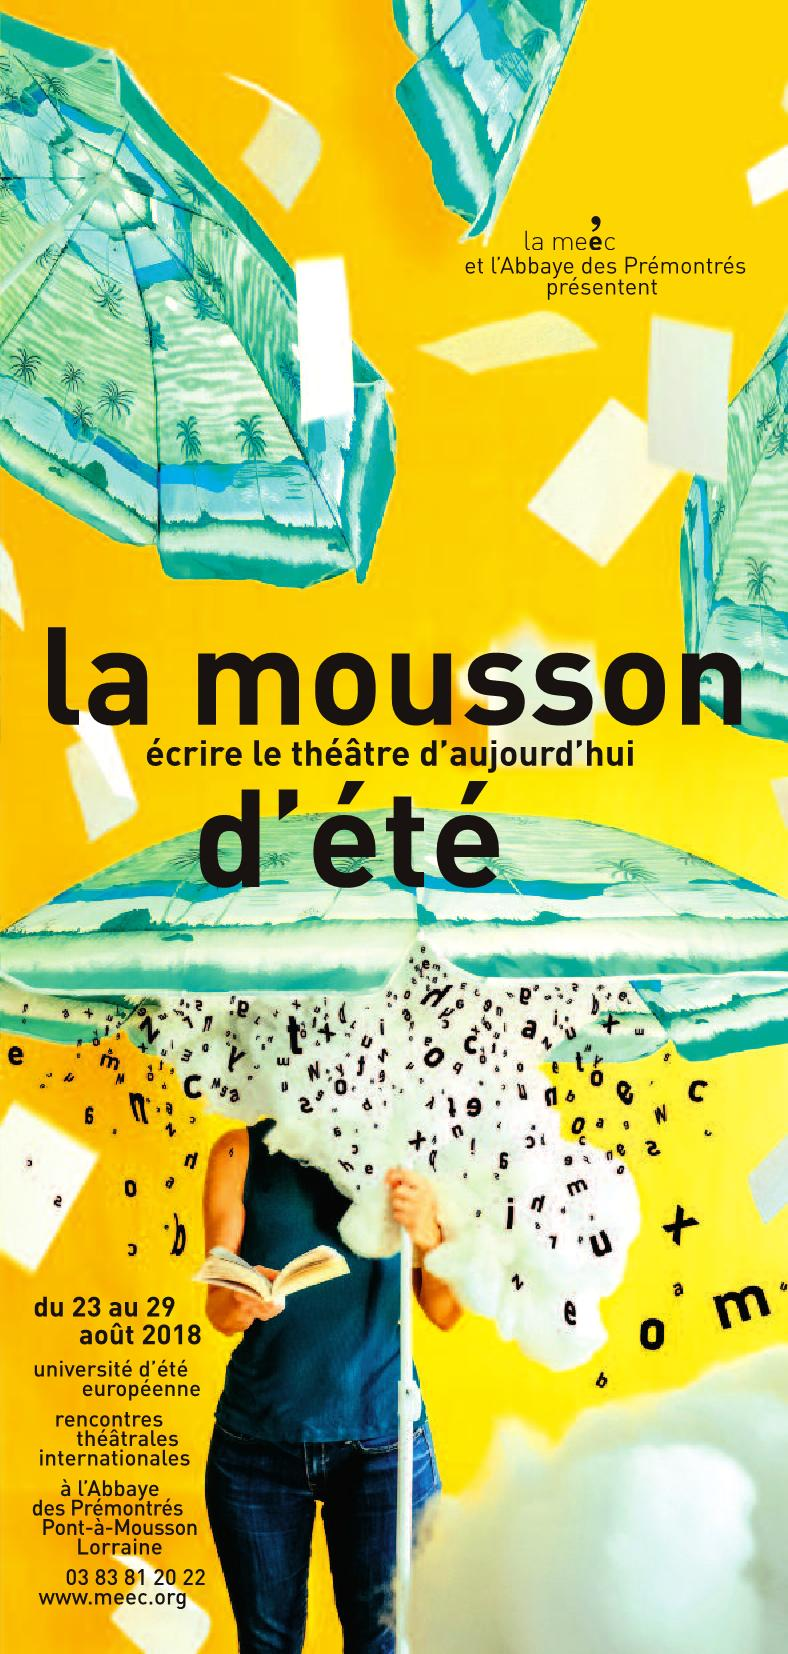 La mousson d'été 2018 à Pont-à-Mousson